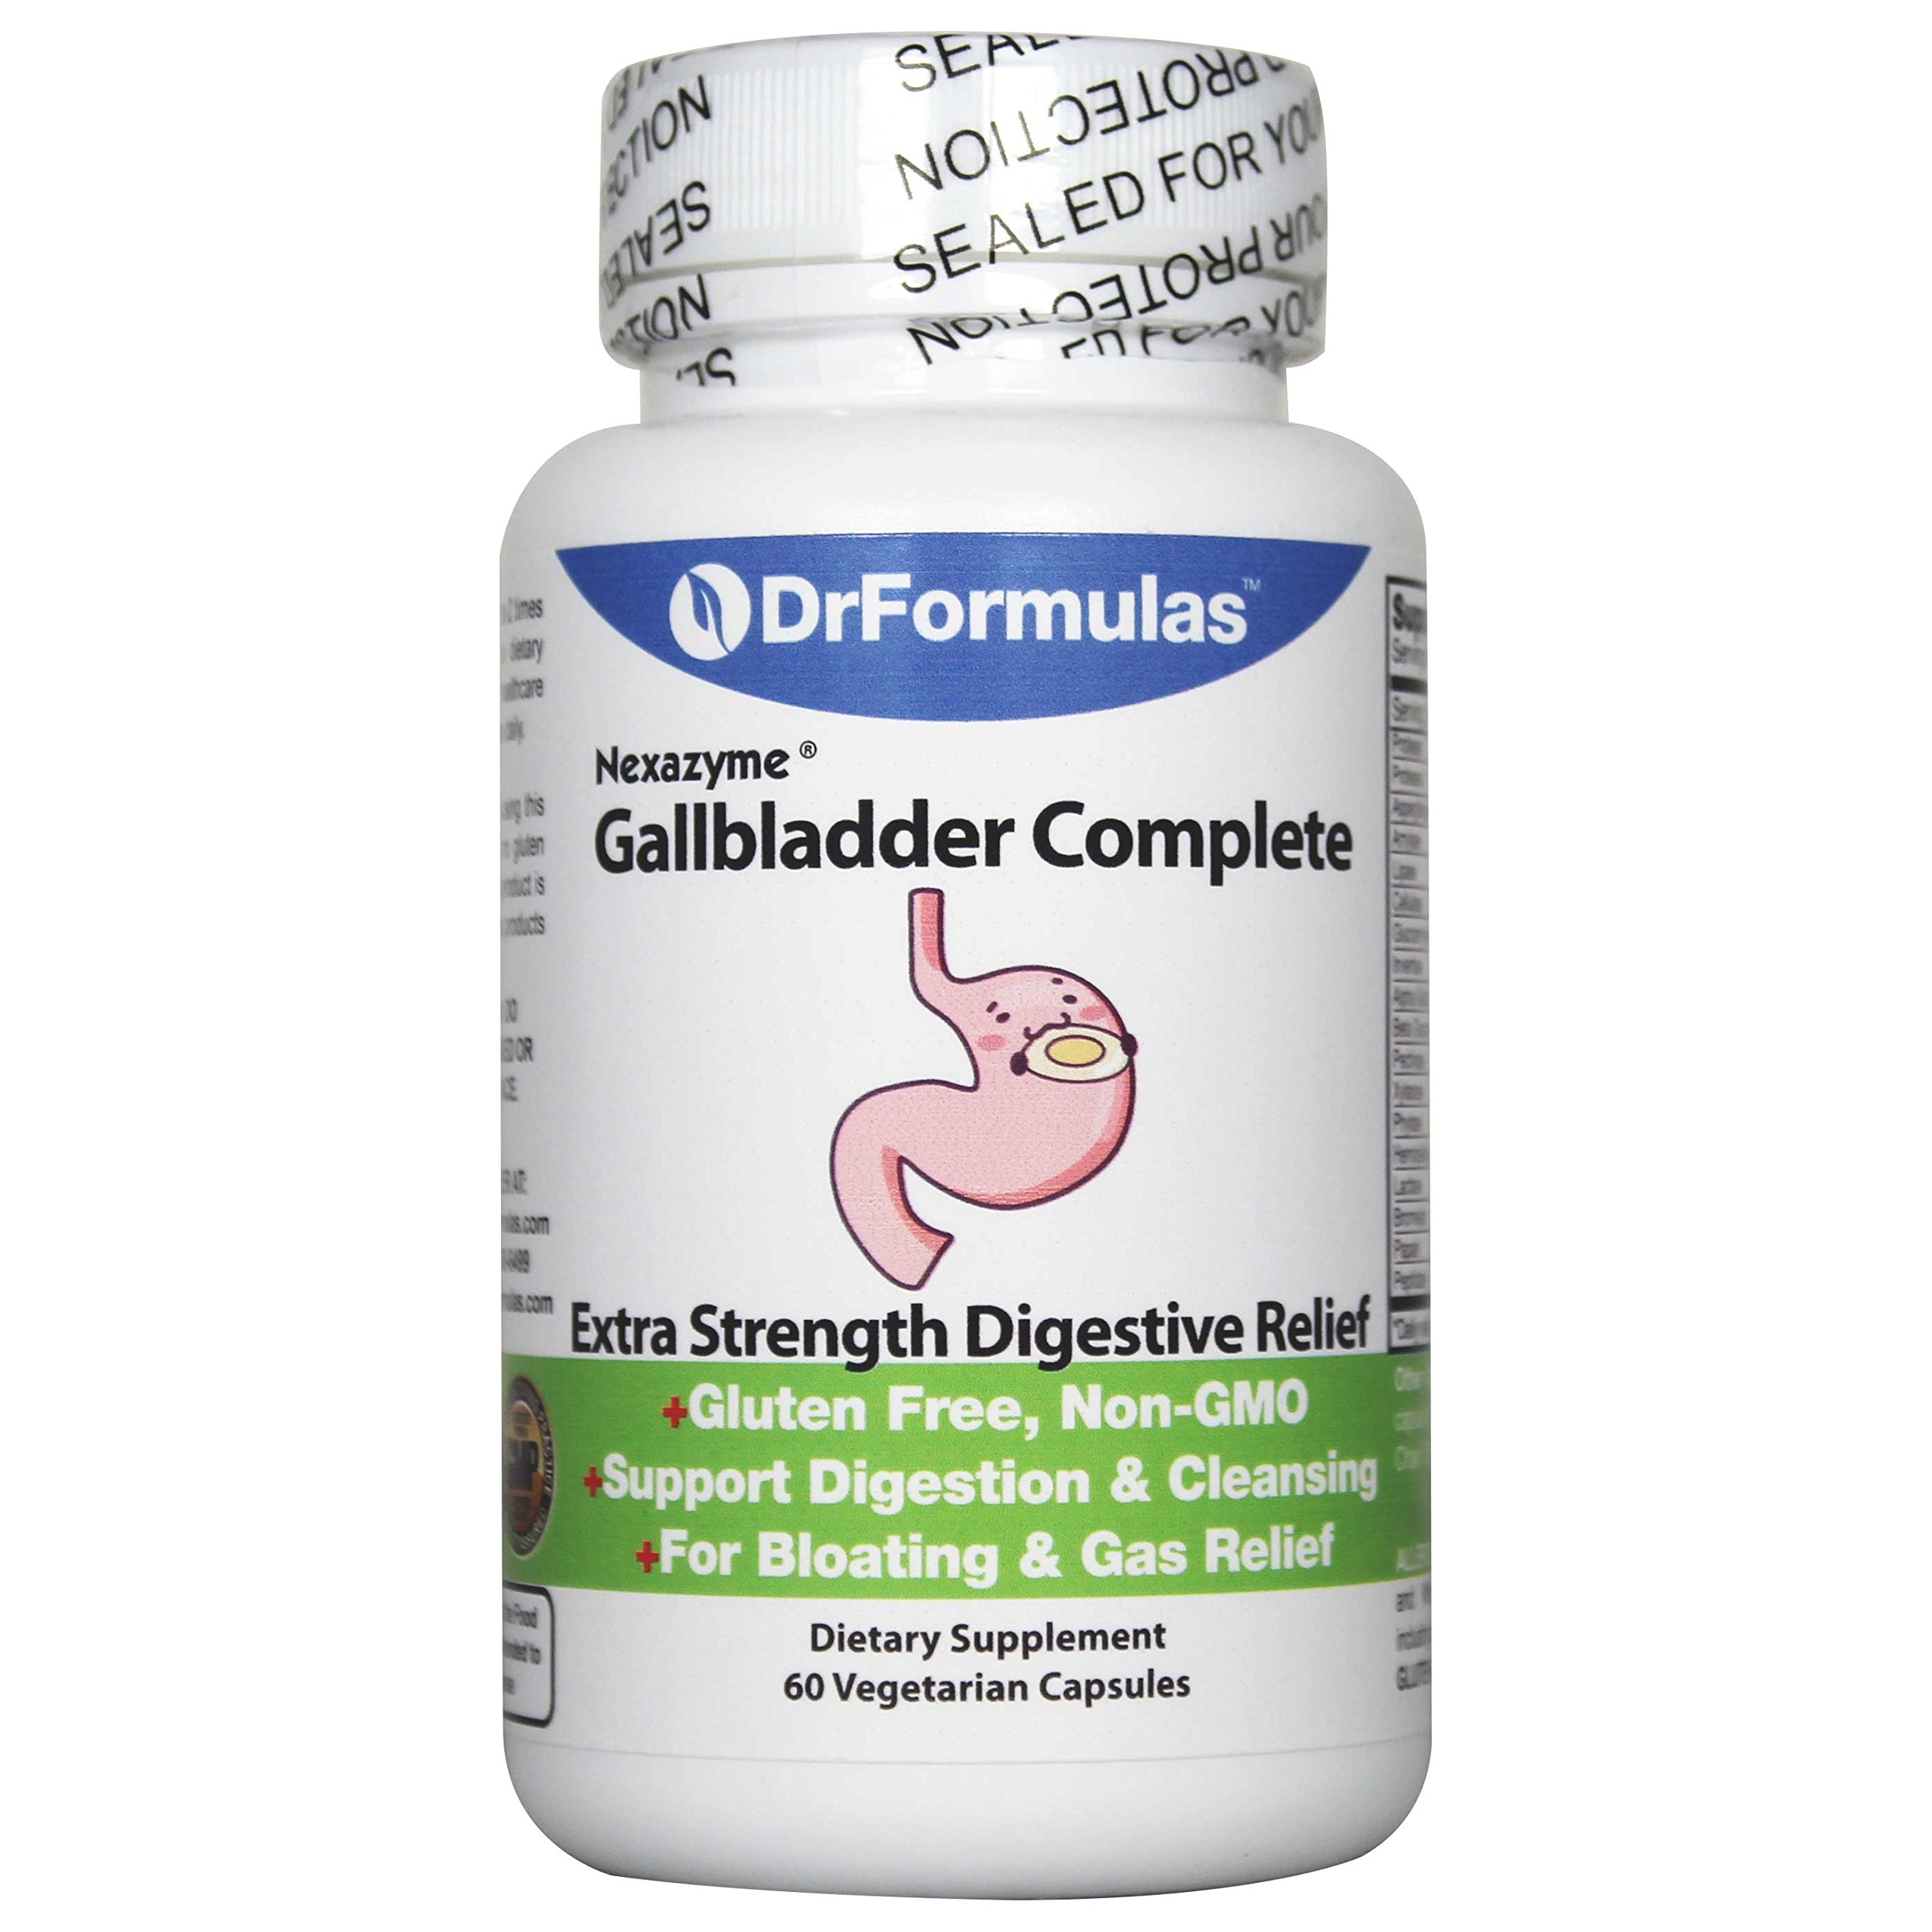 Gallbladder Formula by DrFormulas | Complete to Support Cleanse & Digestion, Supplements Contain Digestive Enzymes Amylase, Protease, Lipase, Lactase, Cellulase, Bromelain 60 Capsules by DrFormulas